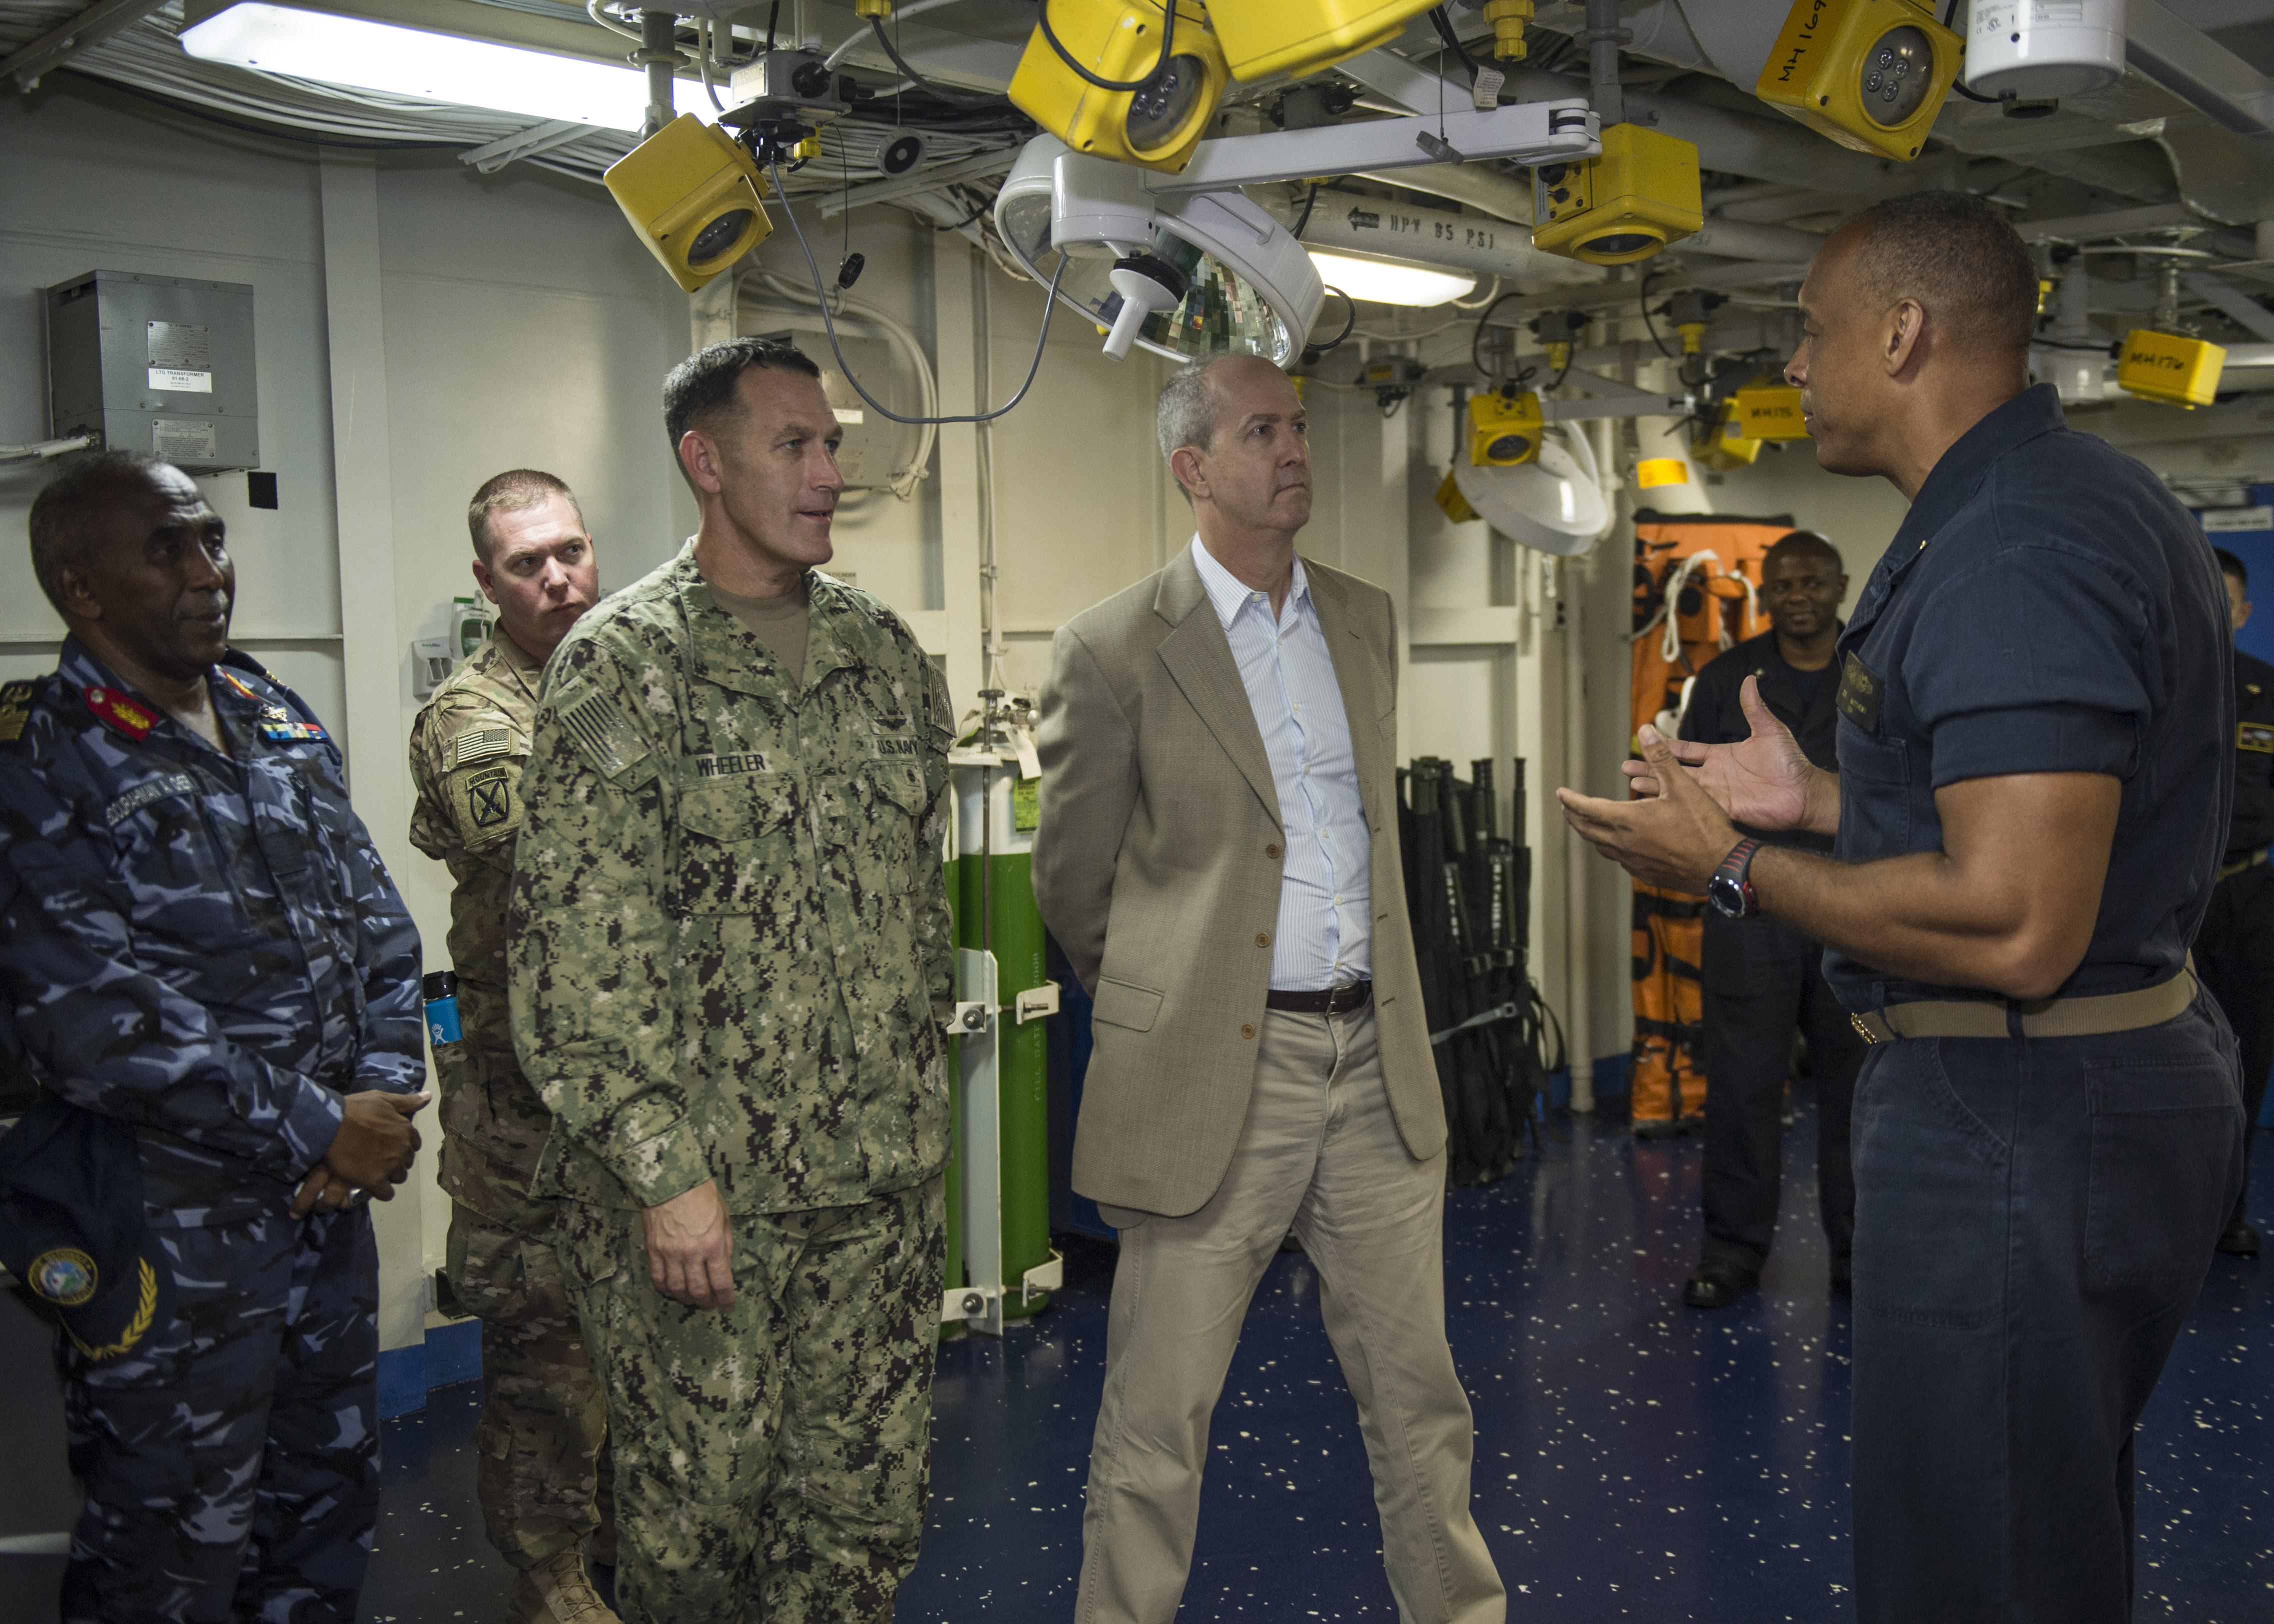 GULF OF ADEN (Dec. 16, 2016) USS Makin Island (LHD 8) Senior Medical Officer, Cmdr. Karlwin Matthews, right, speaks with Chief of Djiboutian Navy Col. Abdourahman Cher, left, Rear Adm. William W. Wheeler, Deputy Commander, Combined Joint Task Force – Horn of Africa, and the U.S. Ambassador to Djibouti, Mr. Tom Kelly in the ship's medical triage. Makin Island is deployed as part of the Makin Island Amphibious Ready group to the U.S. 5th Fleet area of operations to support maritime security operations and theater security cooperation efforts. (U.S. Navy photo by Petty Officer 3rd Class Devin M. Langer)